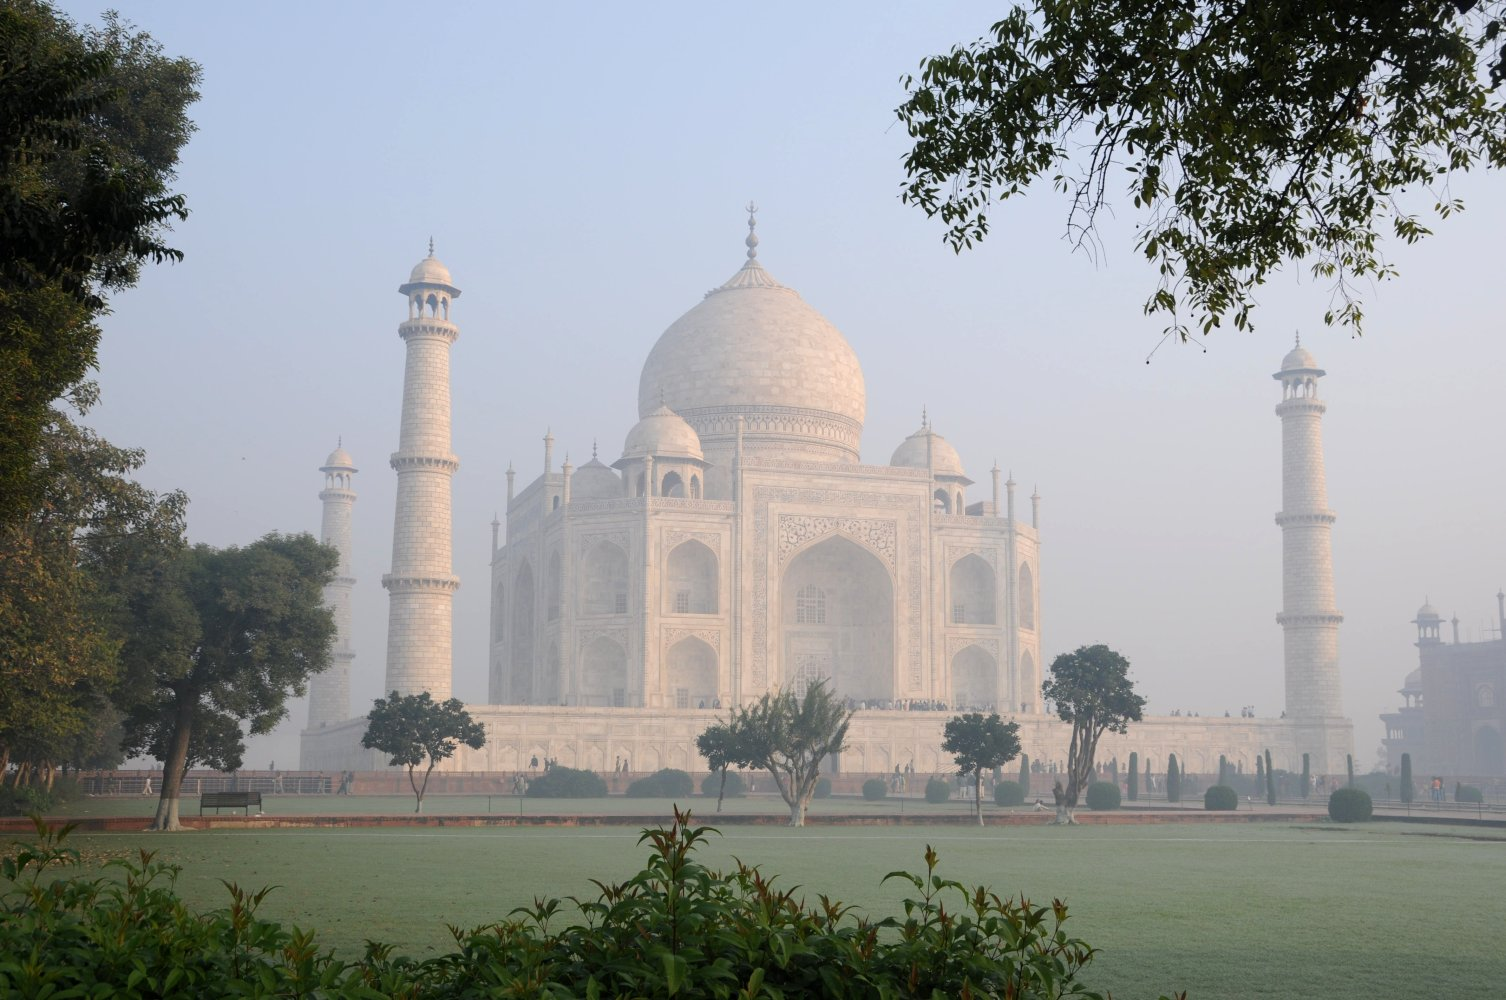 Taj_Mahal,_an_early_morning_view,_Agra.jpg